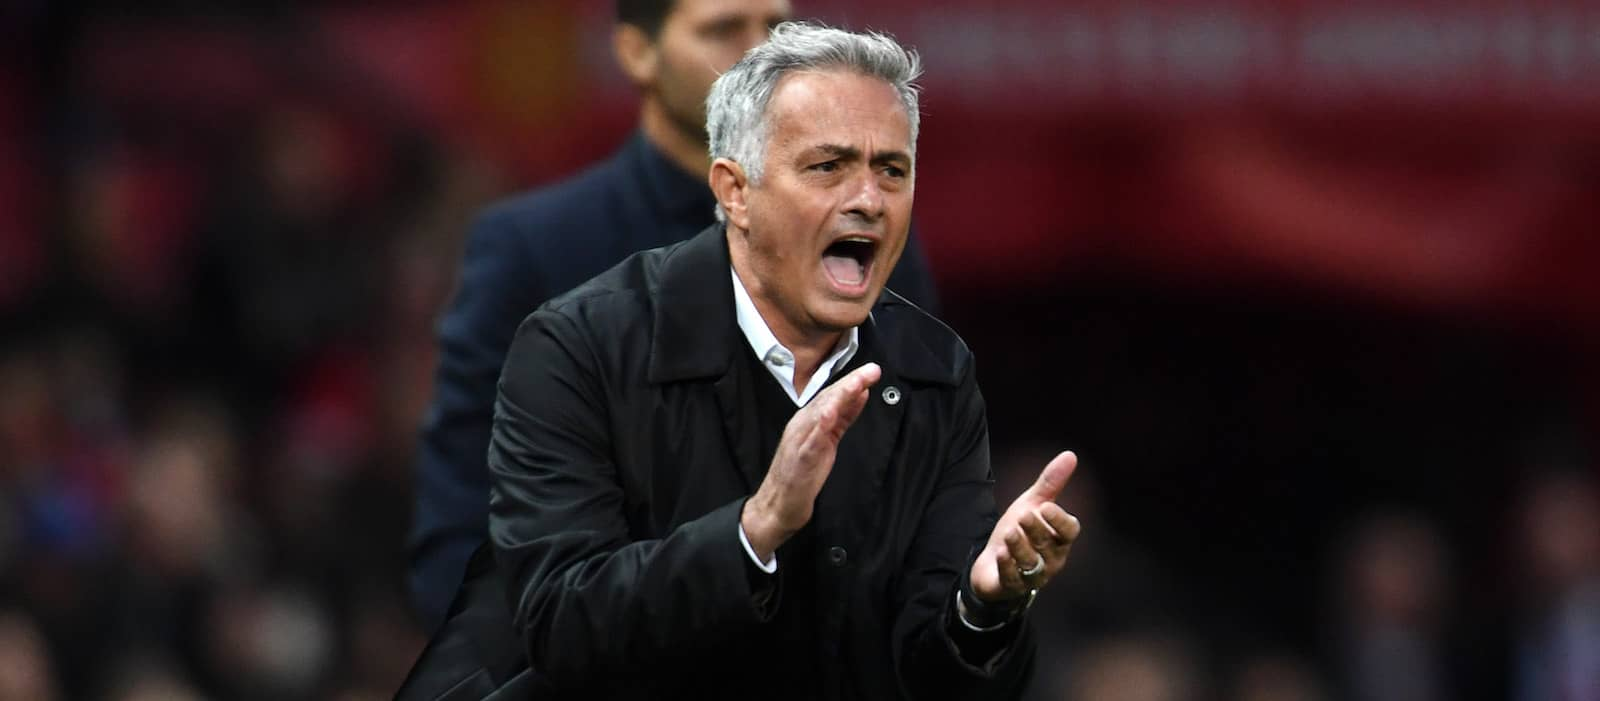 Jamie Redknapp: Jose Mourinho made bizarre decisions vs Tottenham